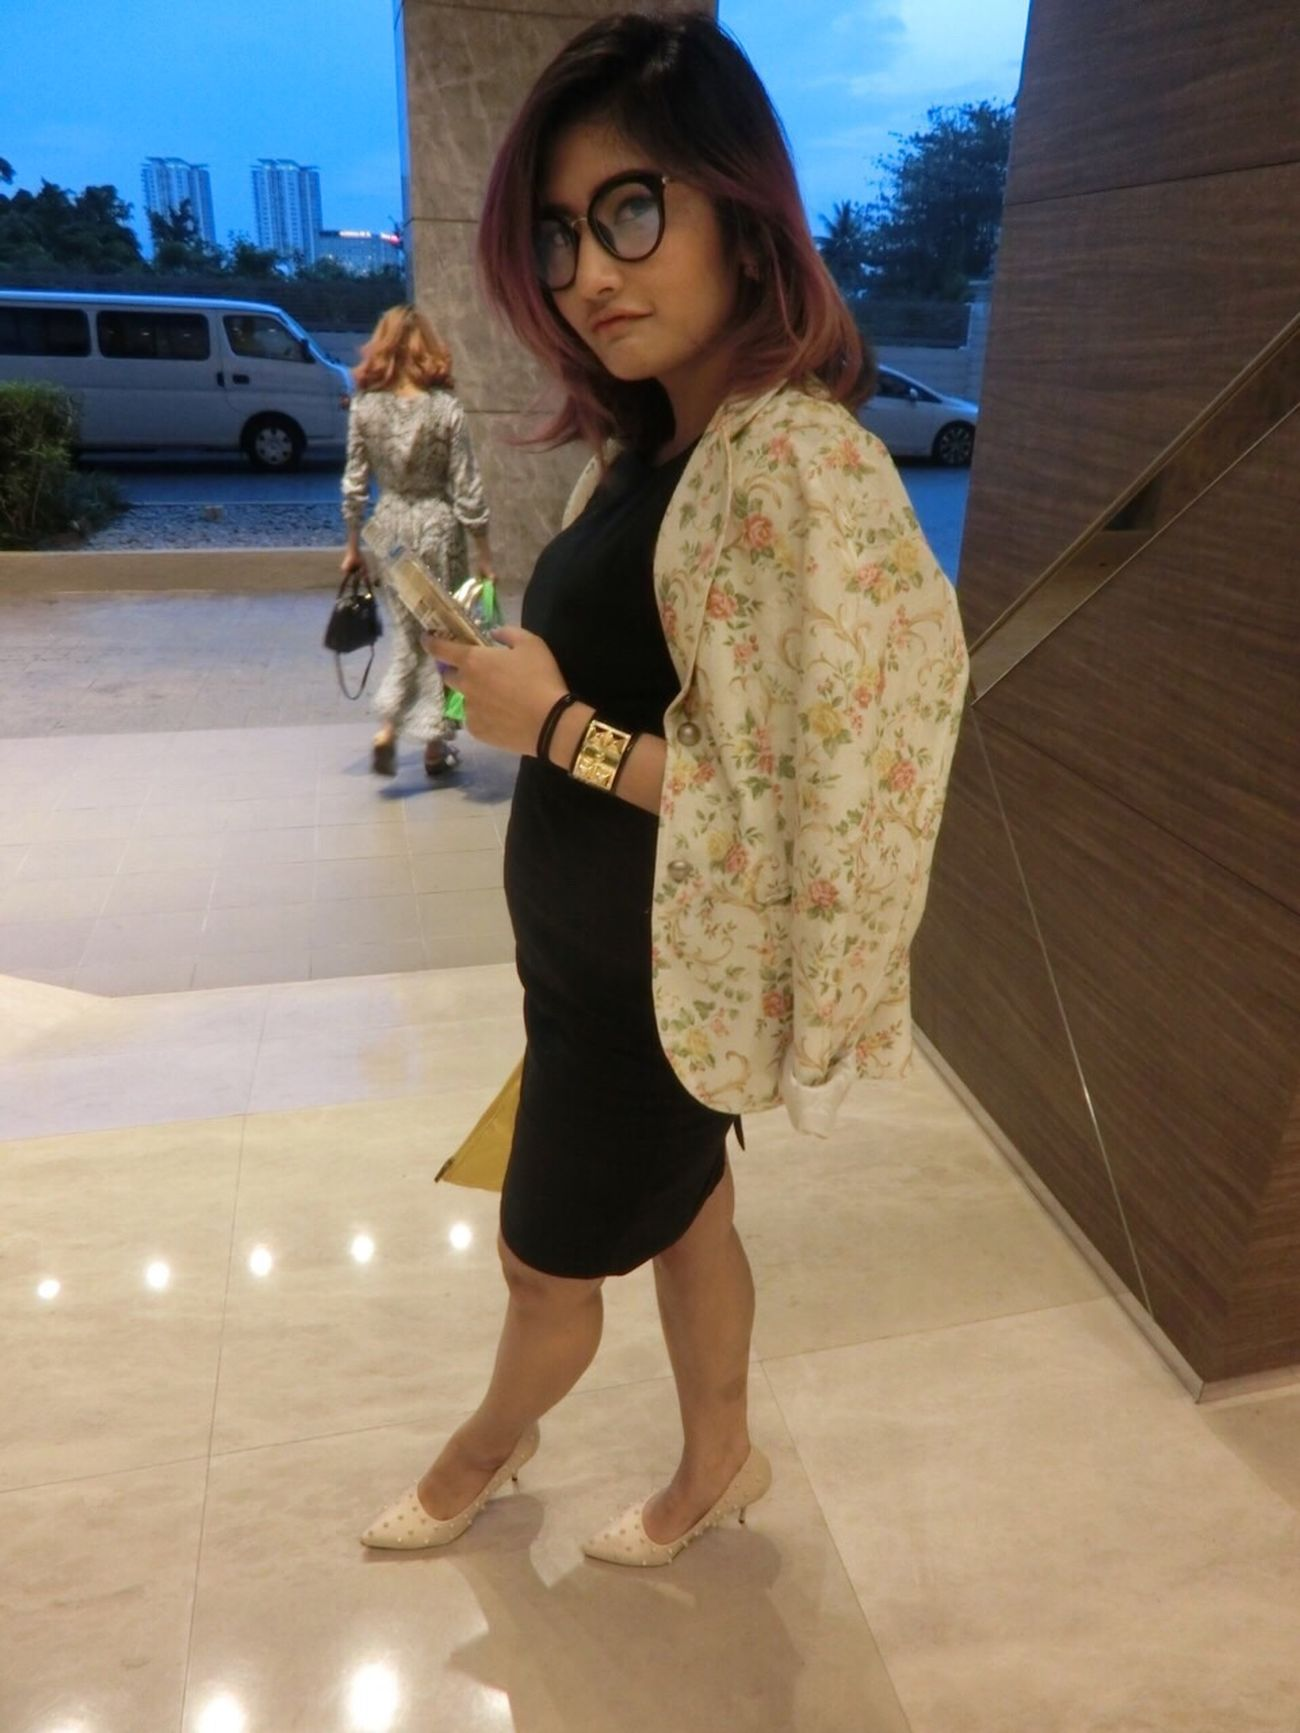 Go go meeting time Sometime I Feel Like That! Enjoying Life This Is Me Chilling Kuala Lumpur Malaysia  Living Dangerously Today's Hot Look Fashion Wclub@kl